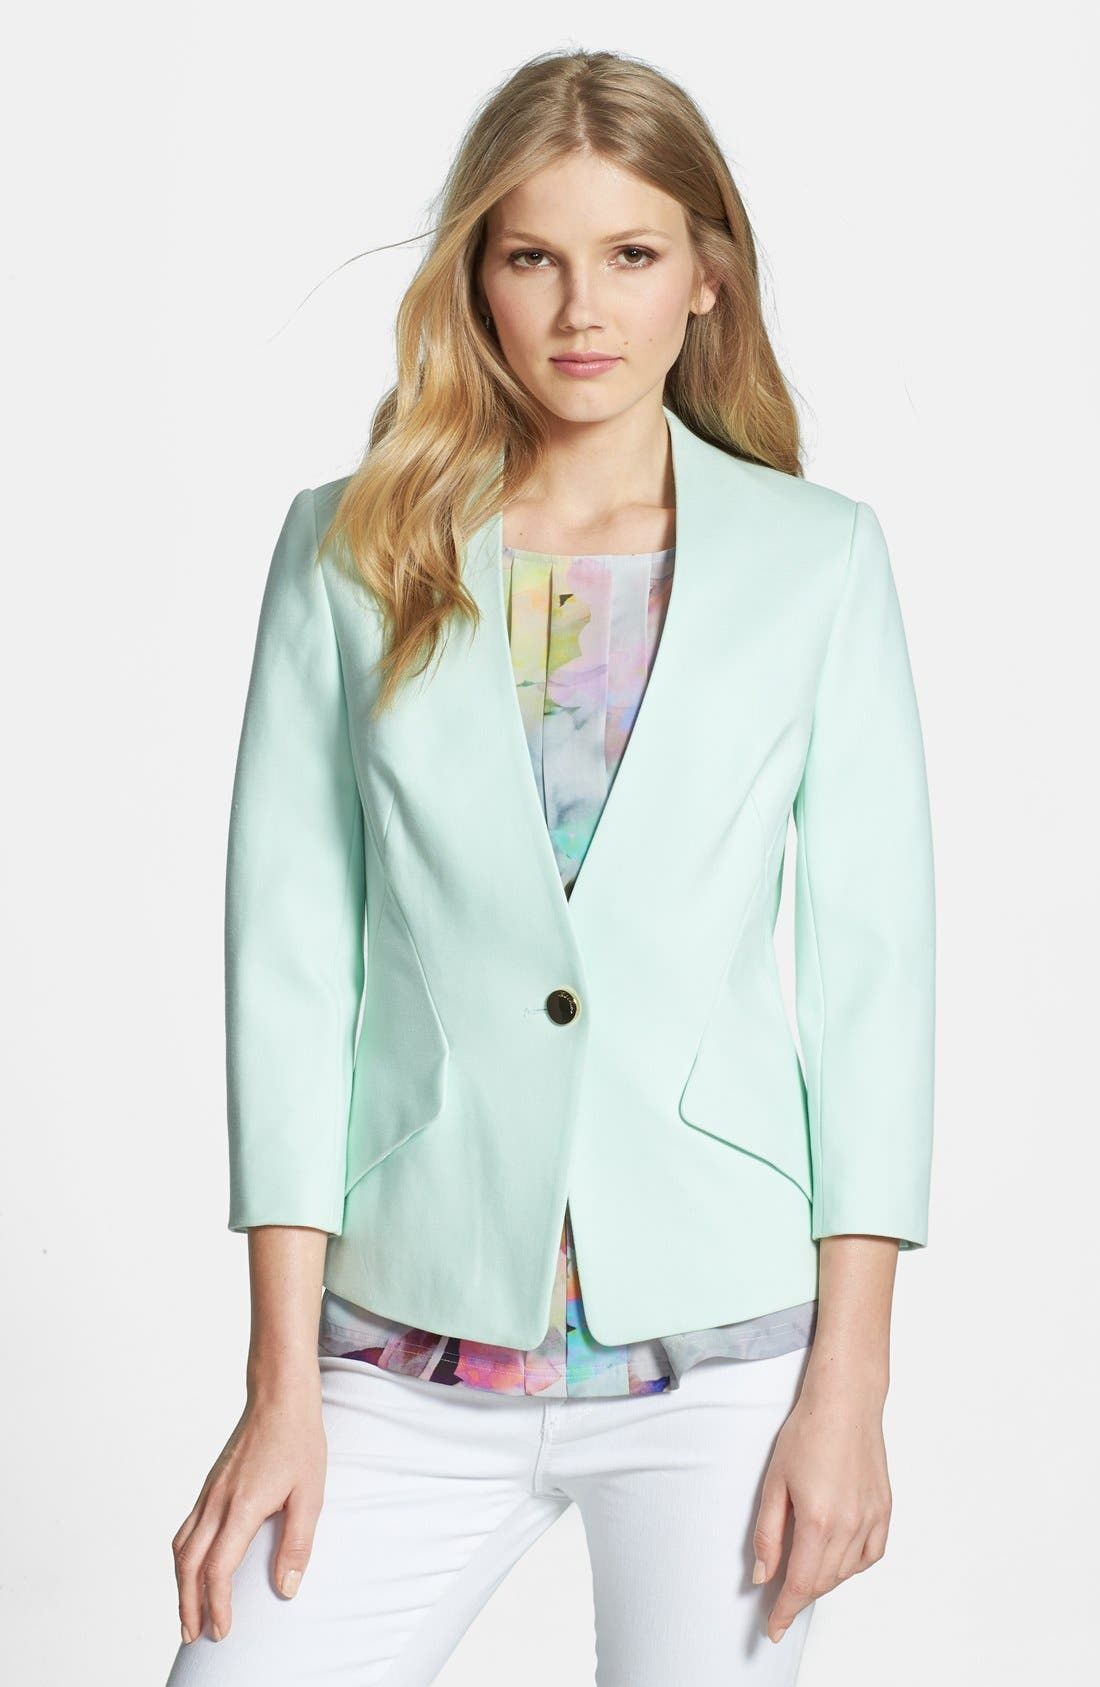 Alternate Image 1 Selected - Ted Baker London One-Button Ponte Knit Jacket